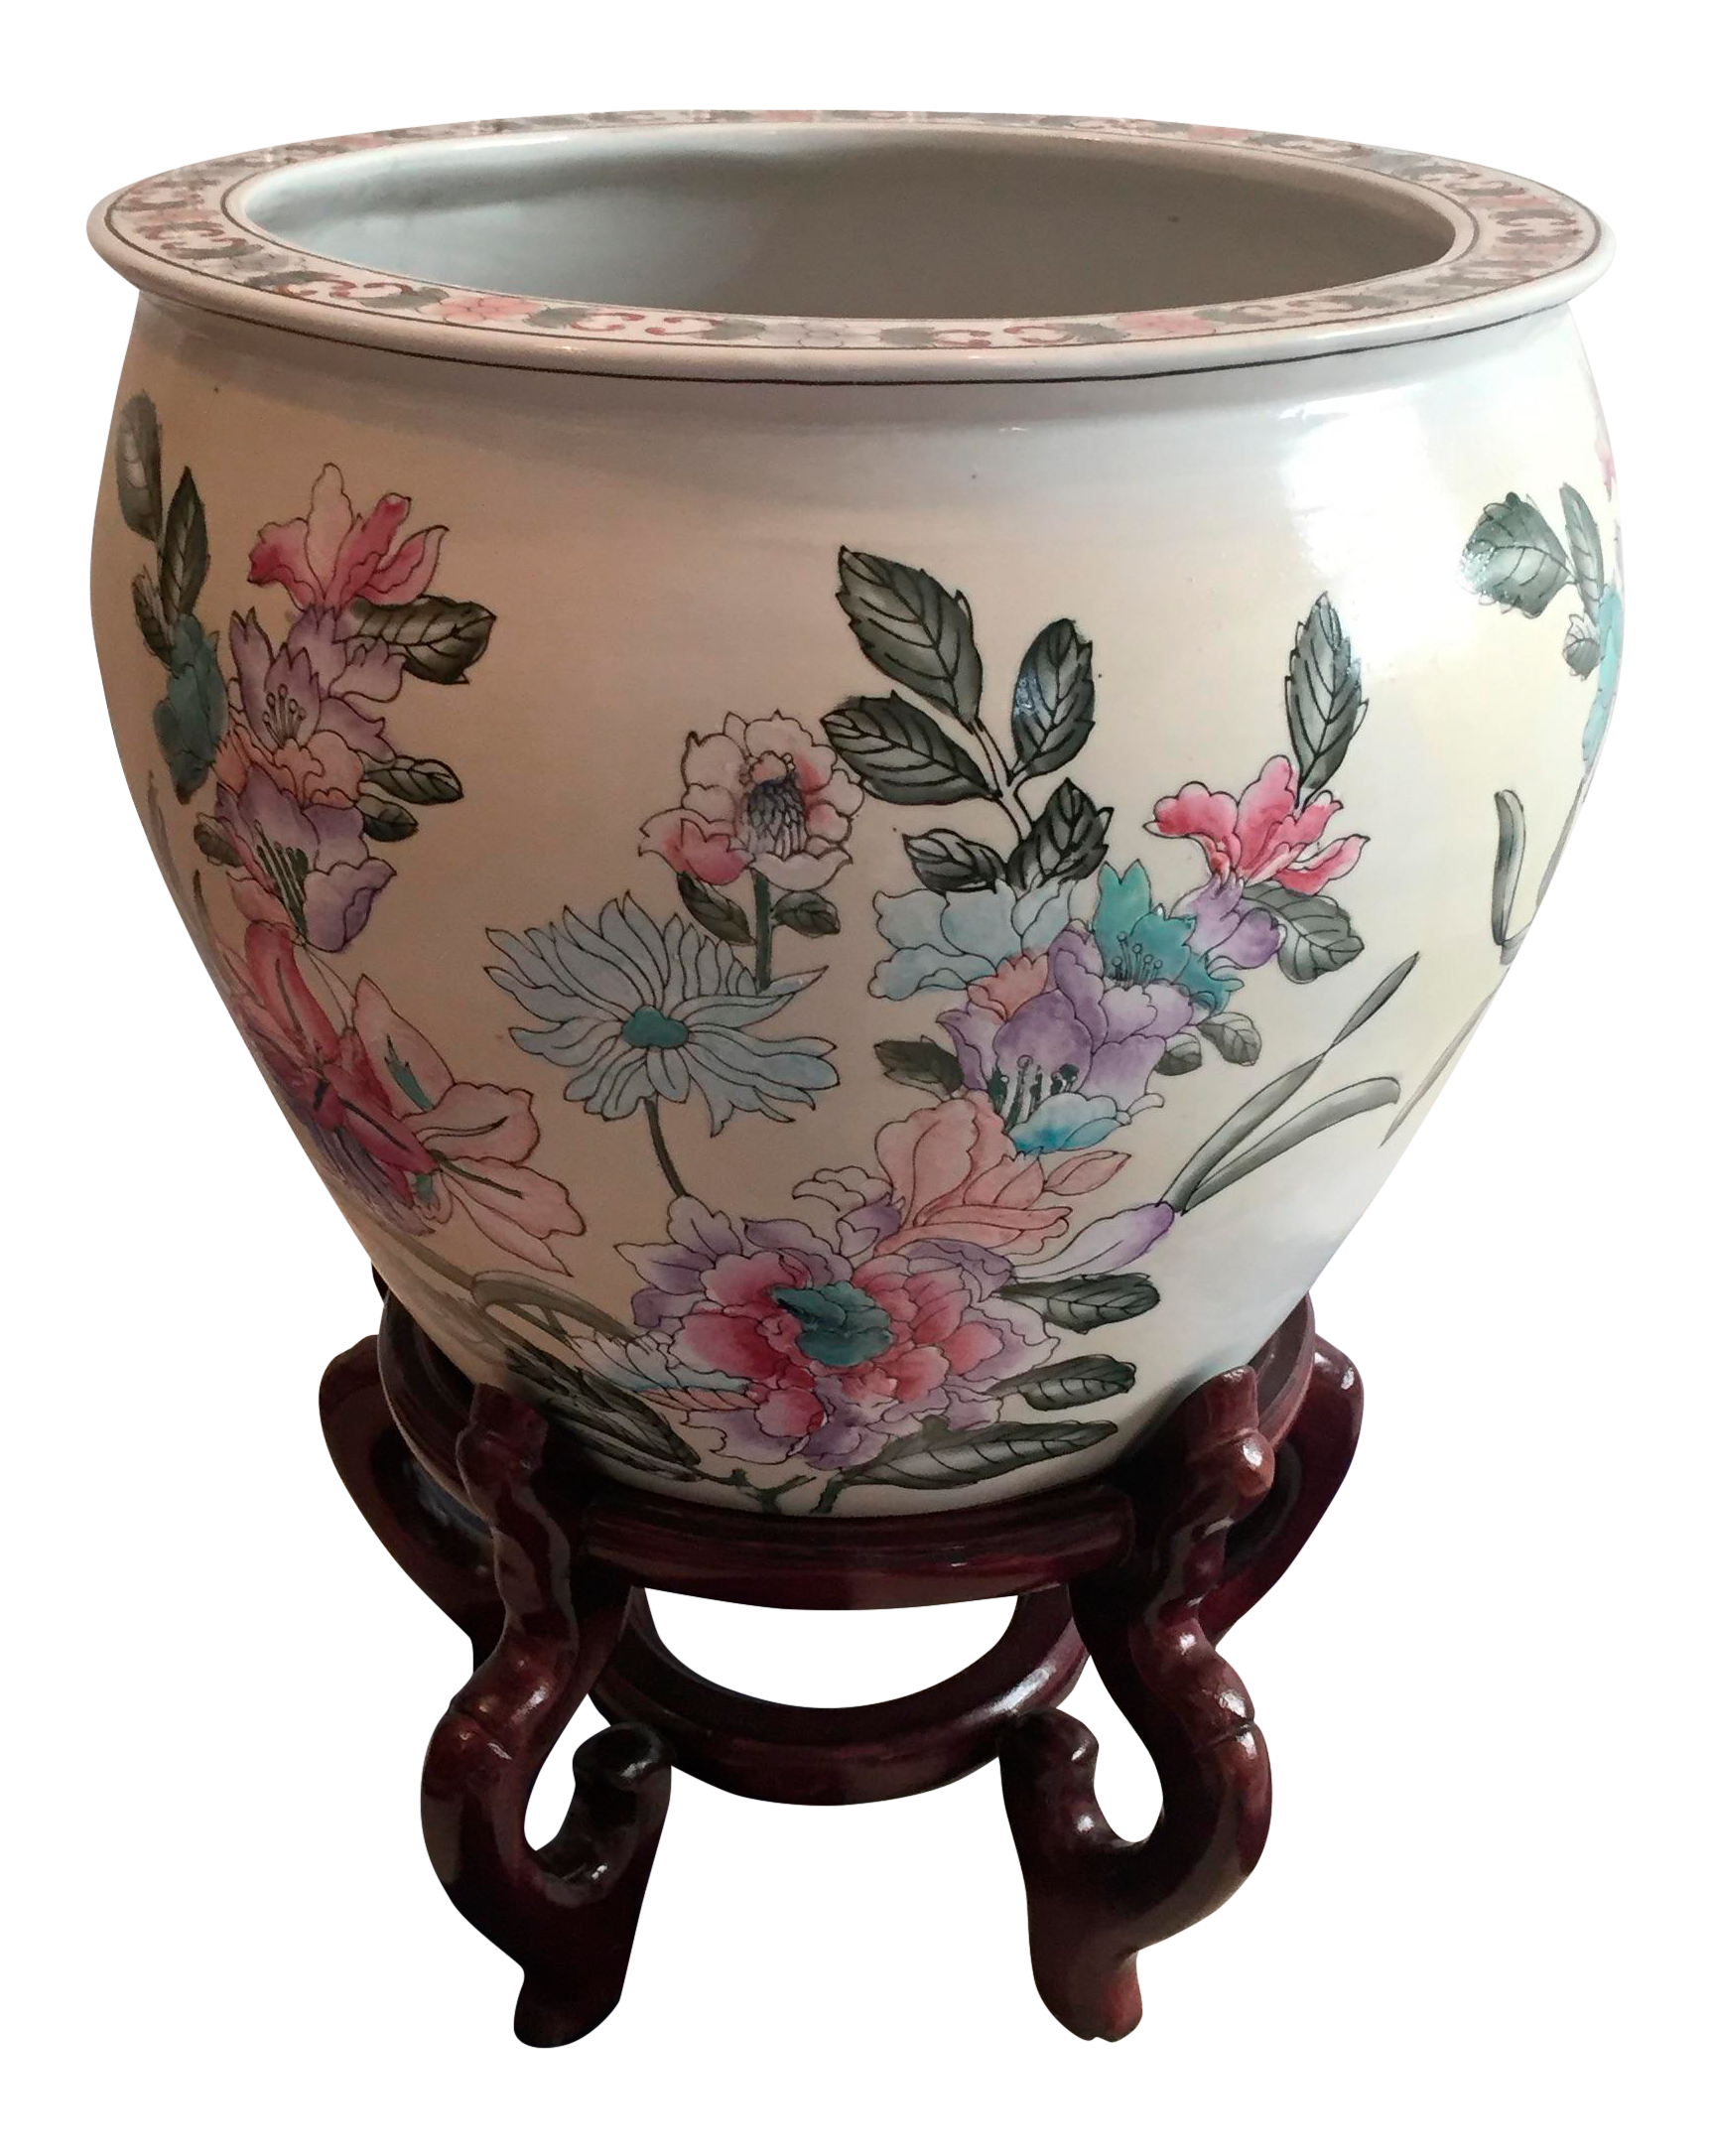 Chinese Porcelain Fish Bowl Jardiniere On Wooden Stand Chairish